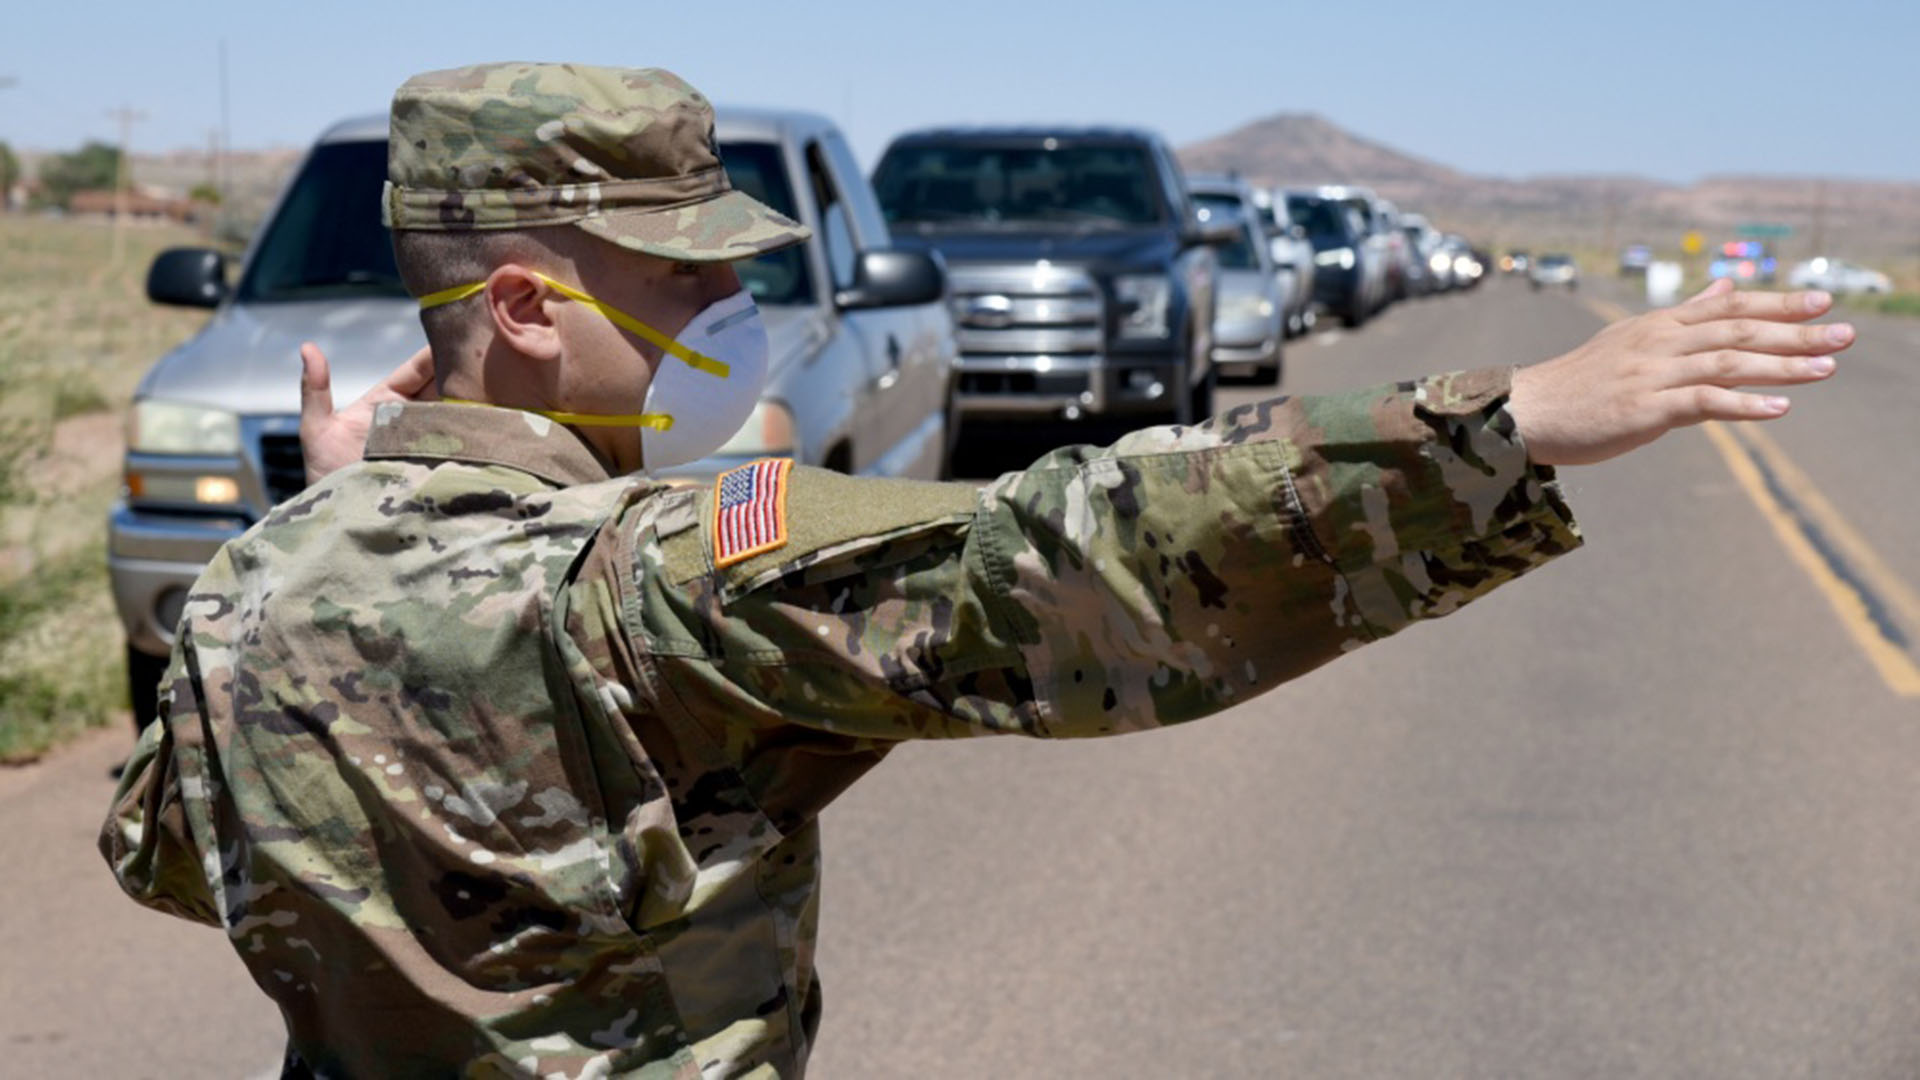 Arizona National Guard service member directs visitor traffic at COVID-19 testing site in Tonalea, Arizona, in the Navajo Nation May 19, 2020.